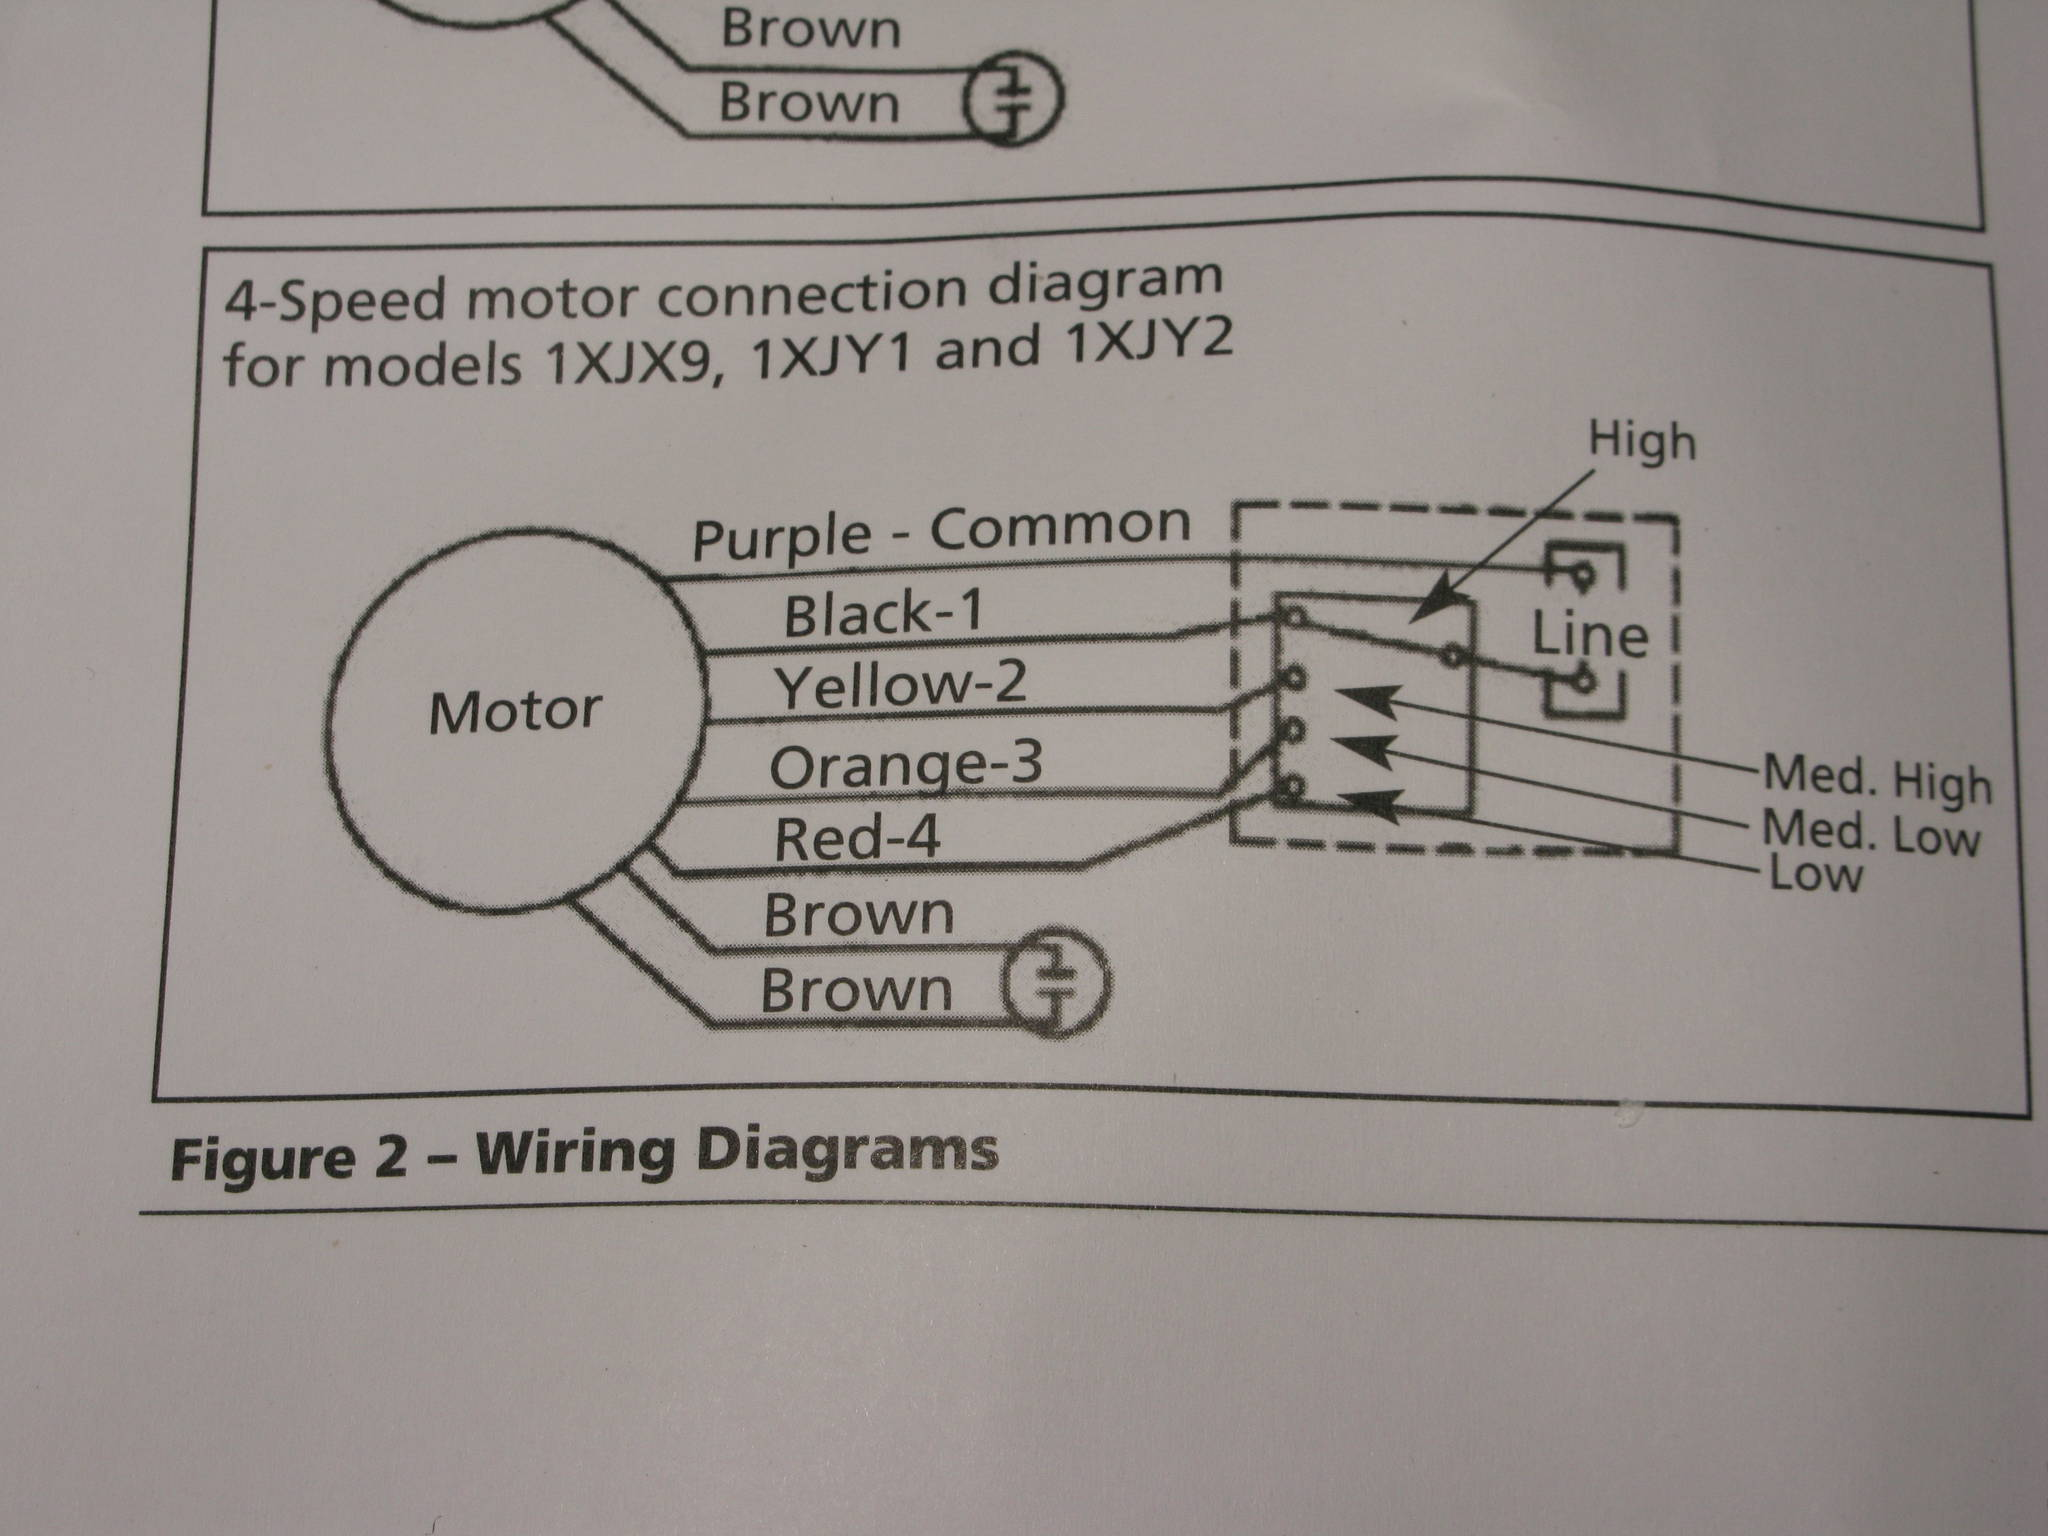 022483553 IMG_3678 5451 dayton electric motor wiring diagram on 5451 download wirning  at virtualis.co